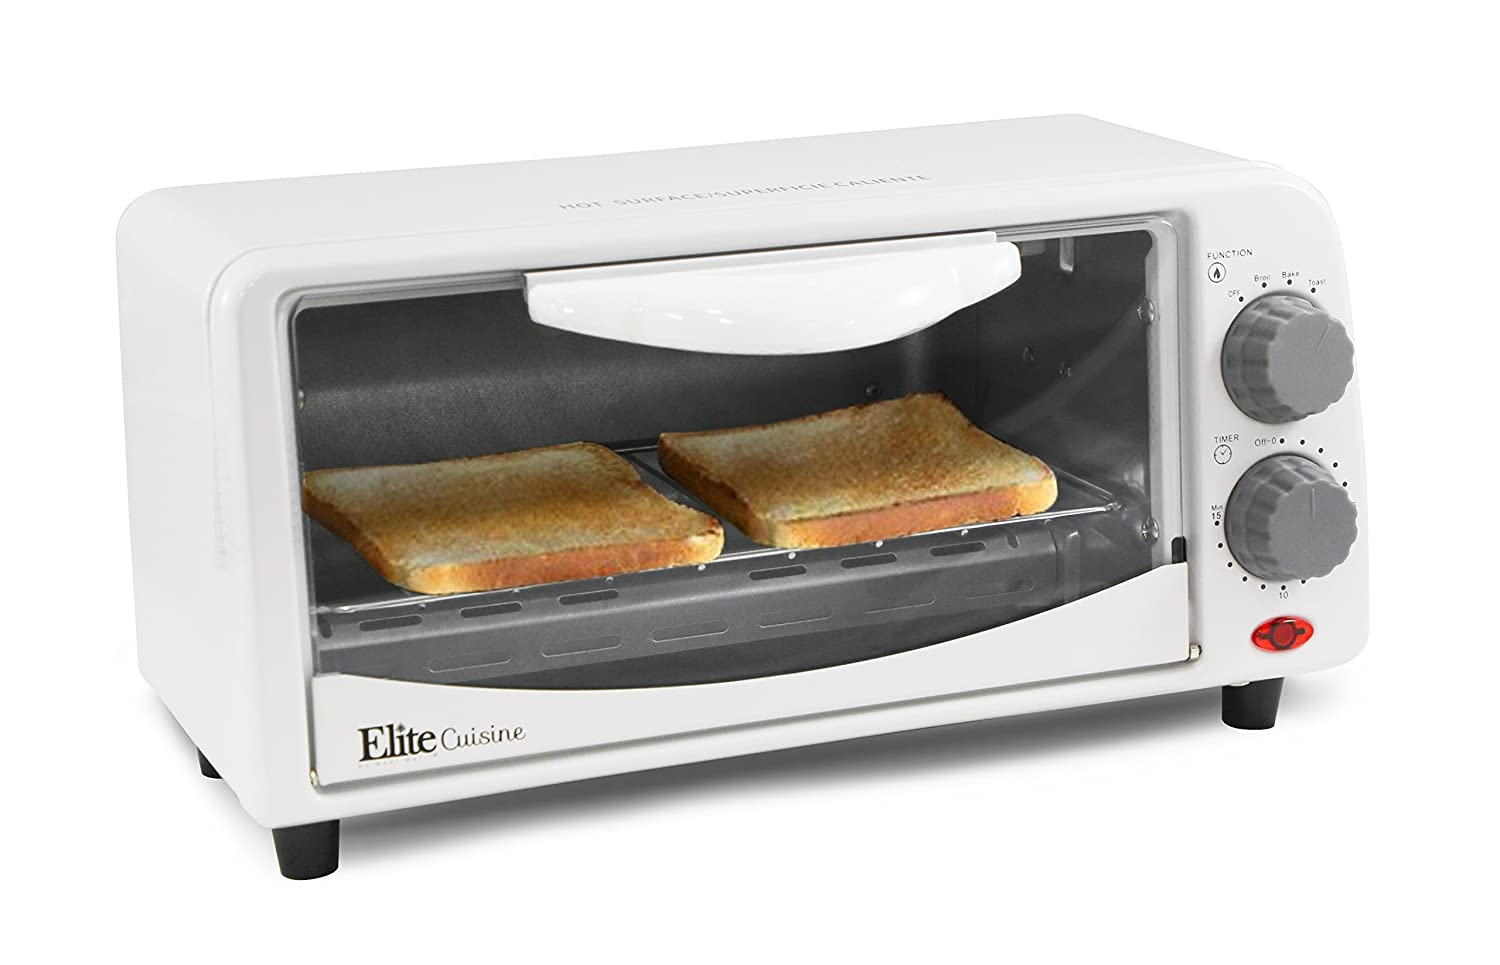 ETO-113Elite Cuisine ETO-113 Maxi-Matic 2-Slice Toaster Oven with 15 Minute Timer, White